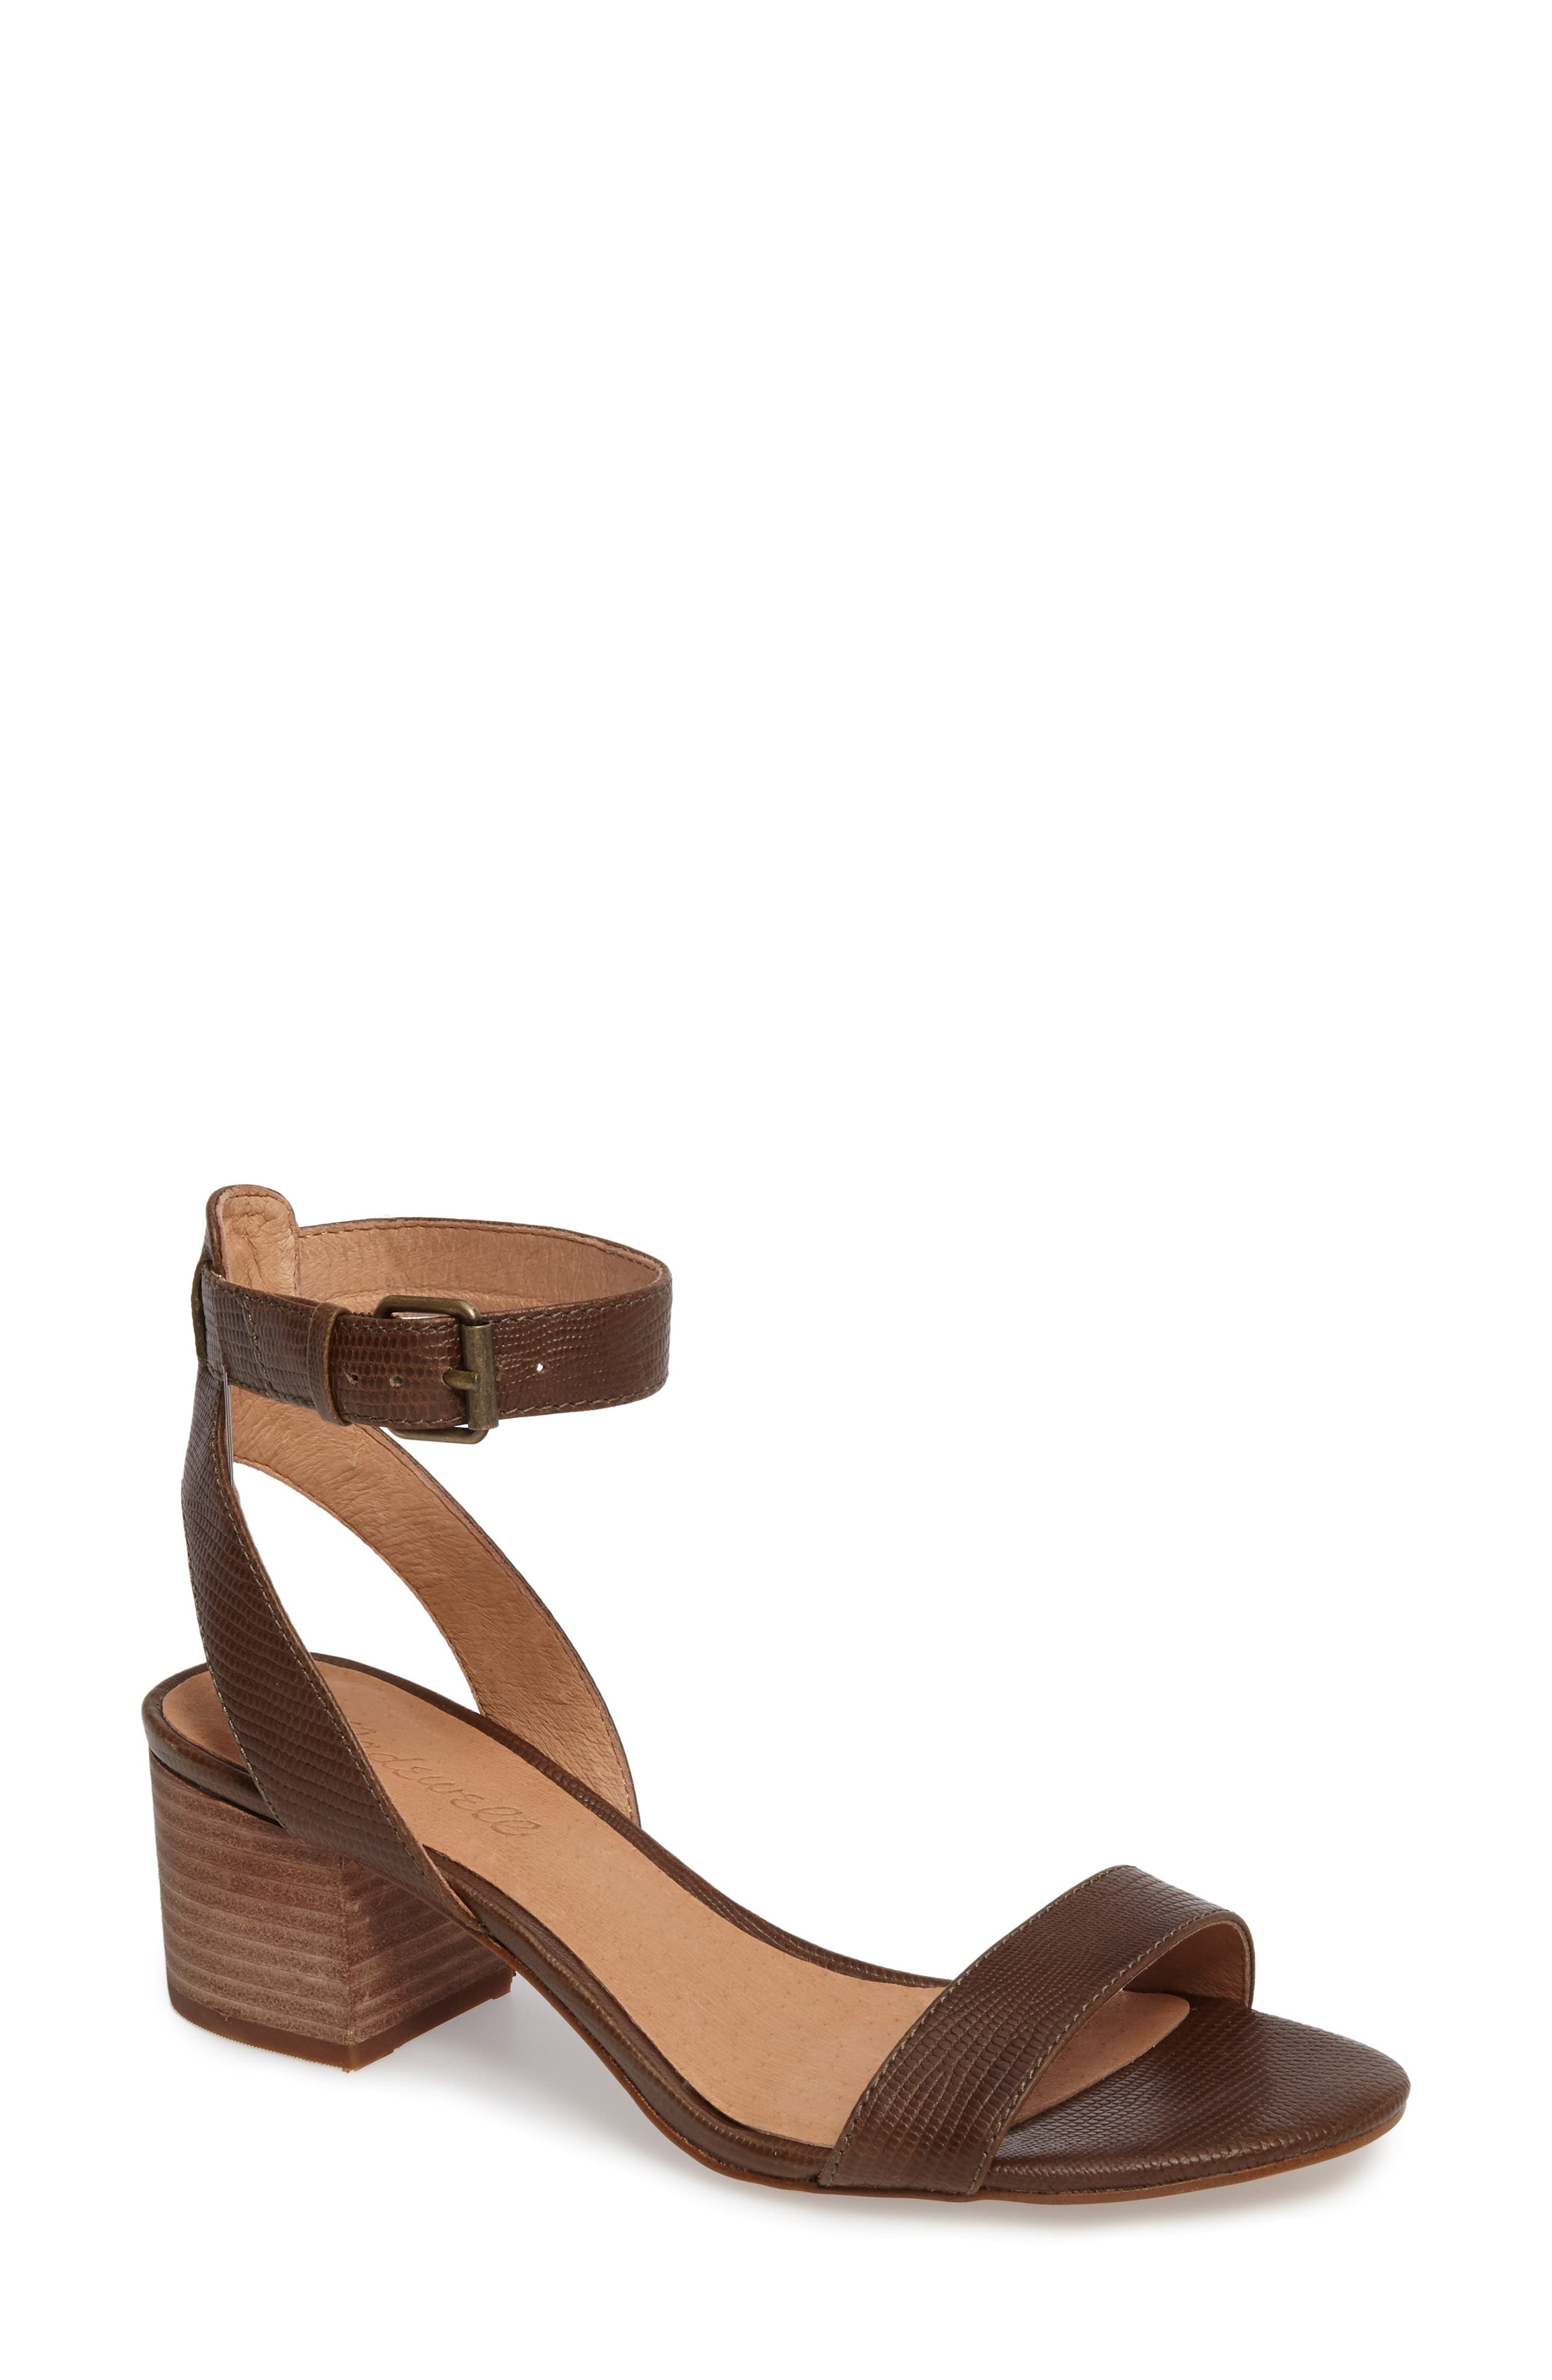 Alternate Image 1 Selected - Madewell Alice Embossed Ankle Wrap Sandal (Women)